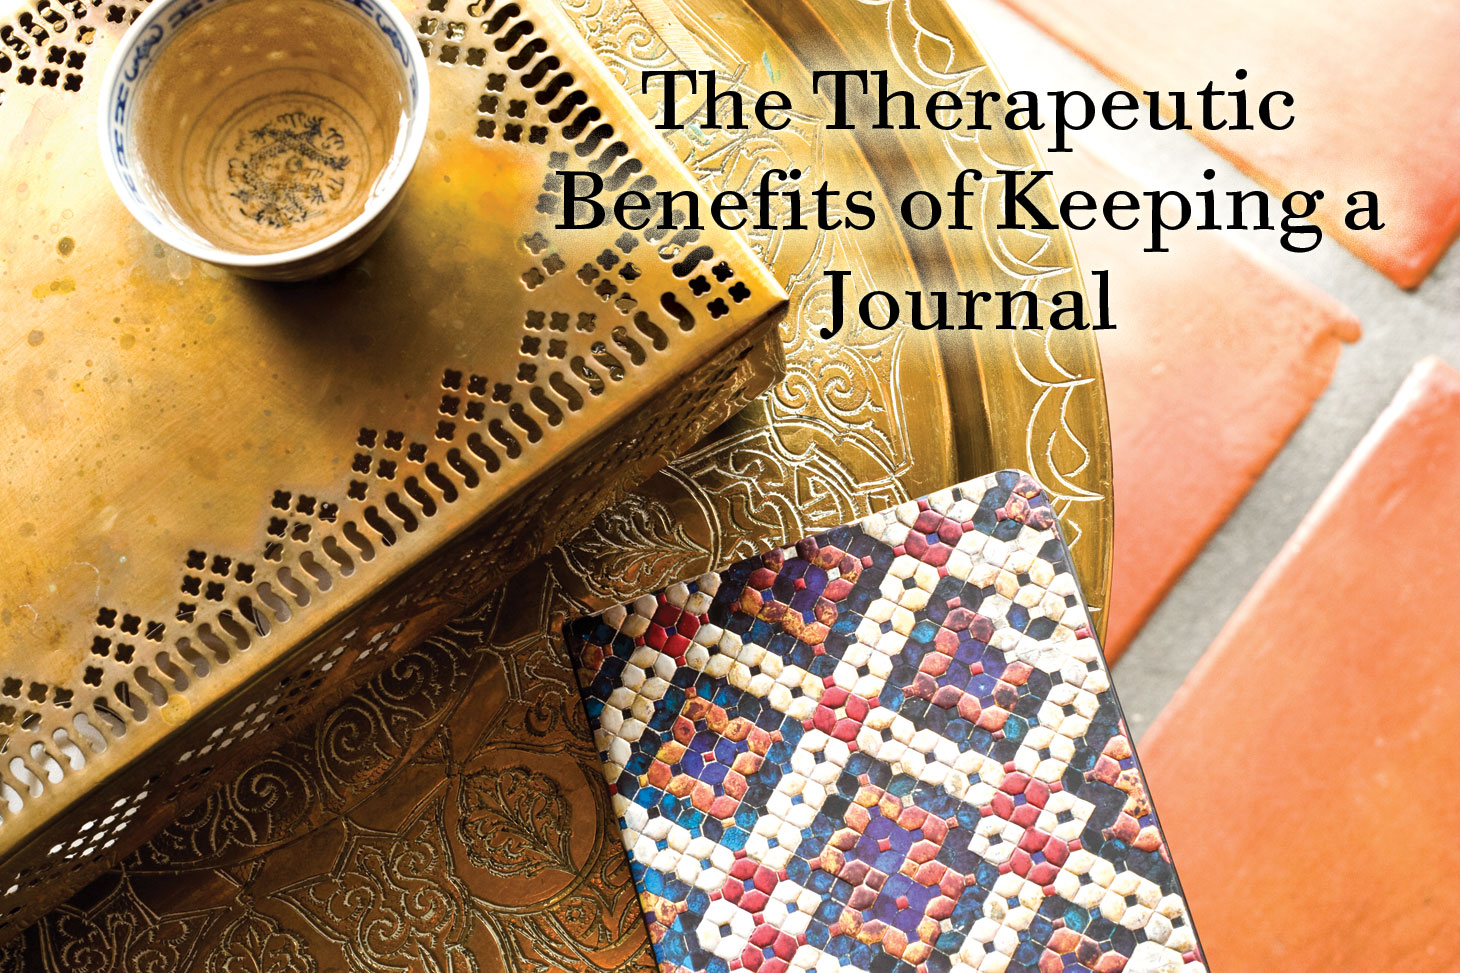 Therapeutic Benefits of Keeping a Journal